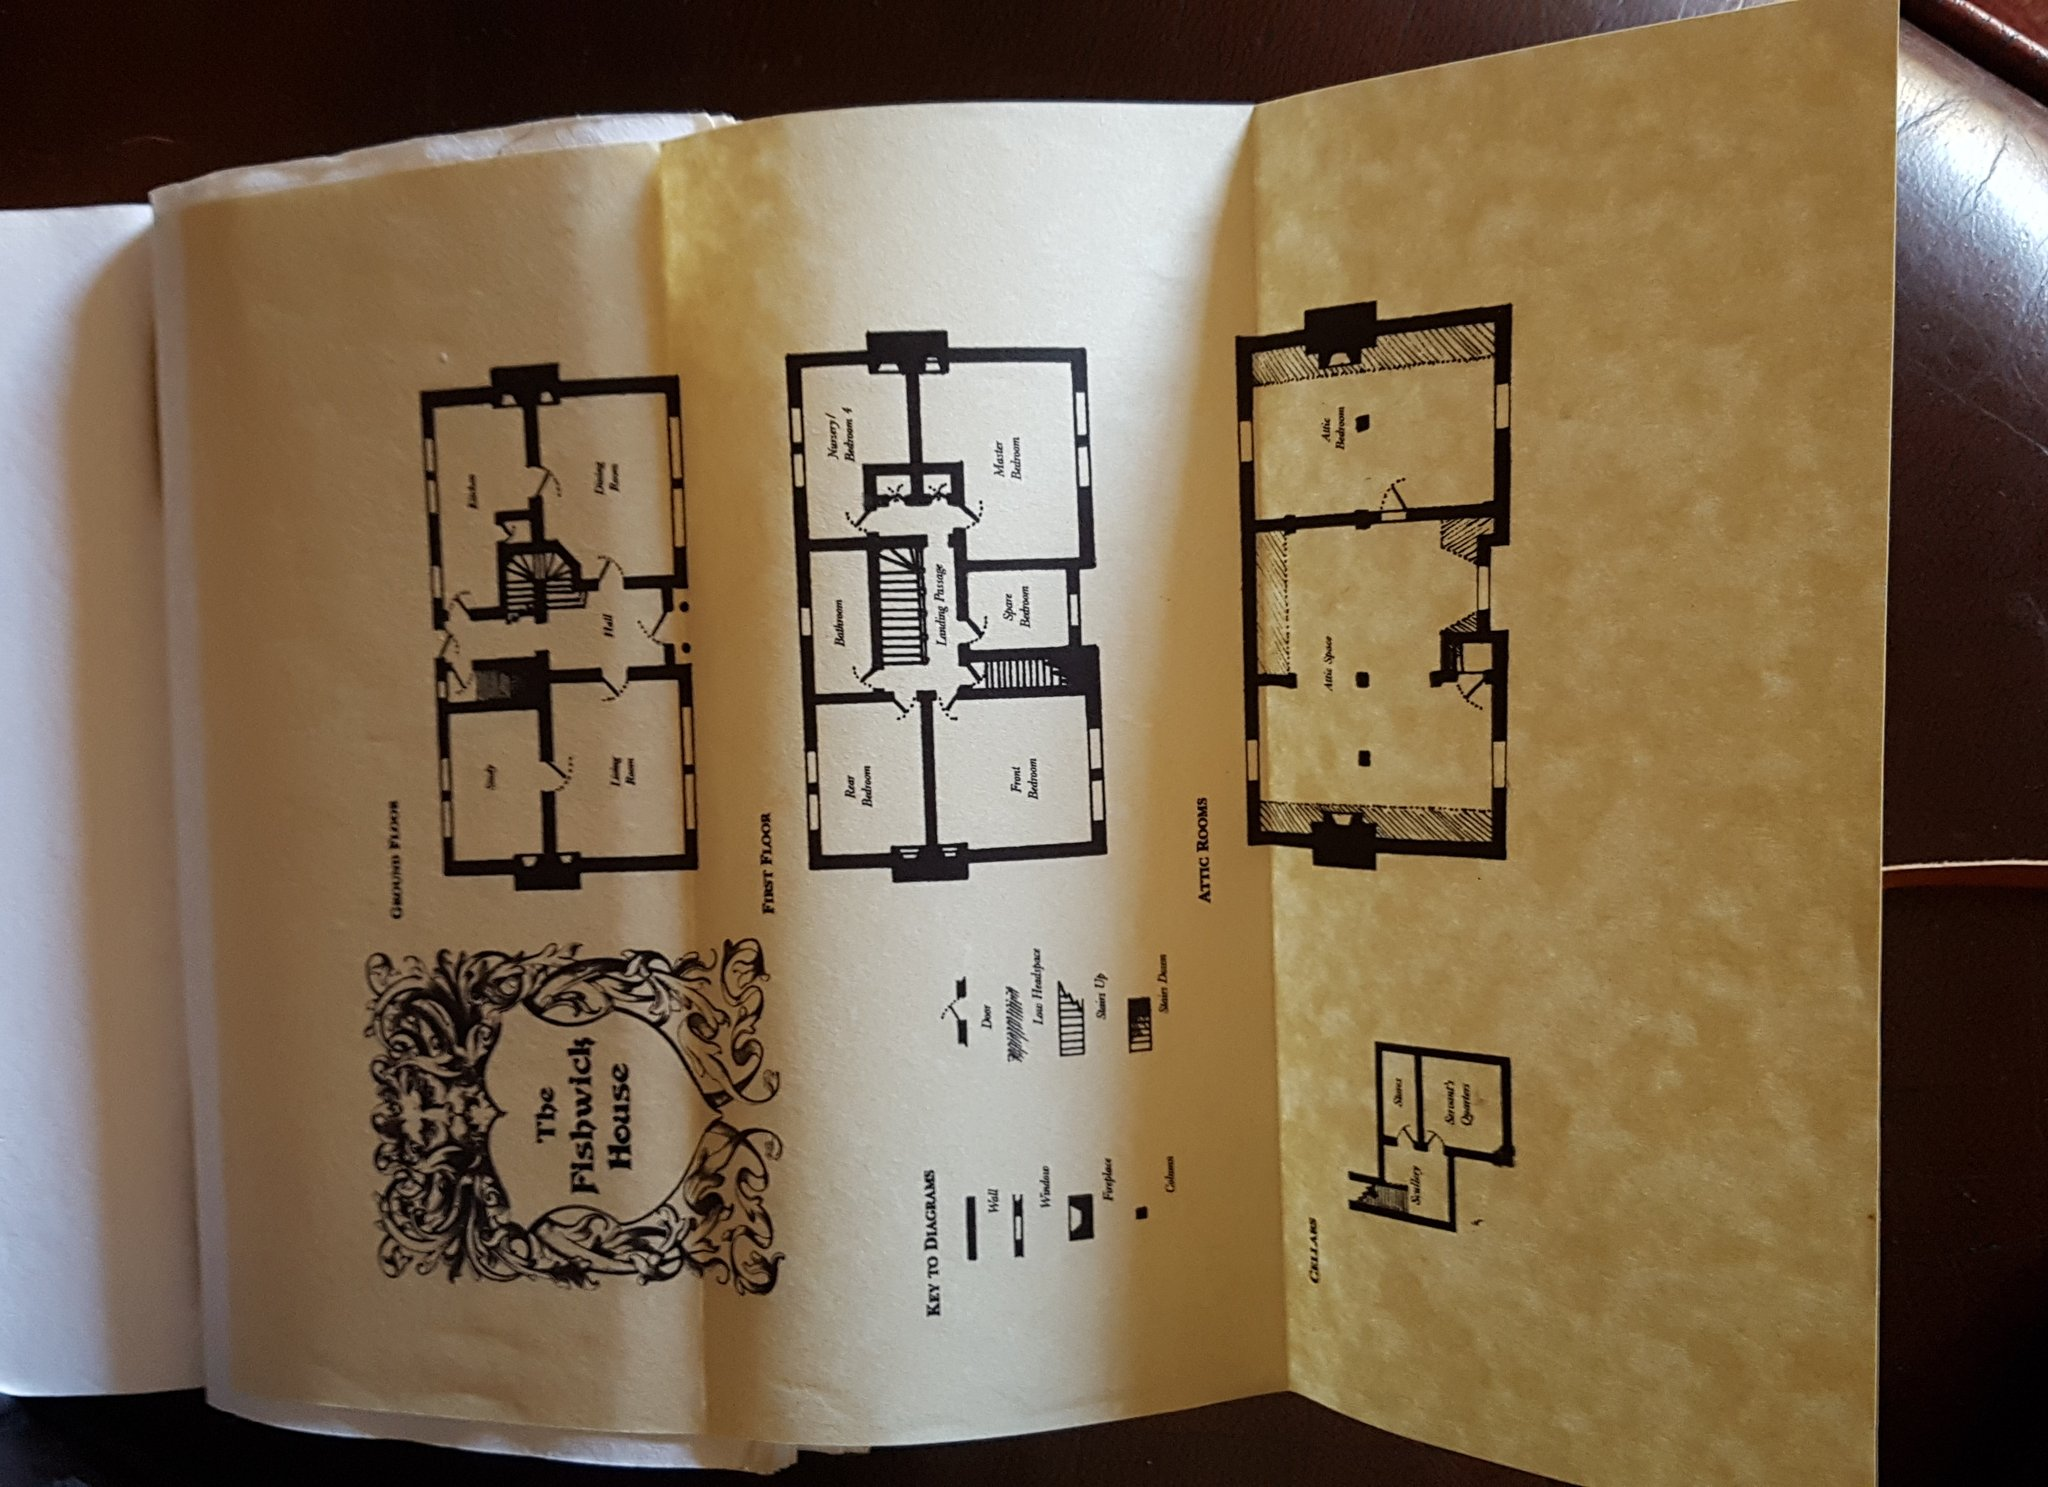 The journal also contains all the floorplans, later redesigned and printed on parchment for posterity. https://t.co/4m4AaiGgnL